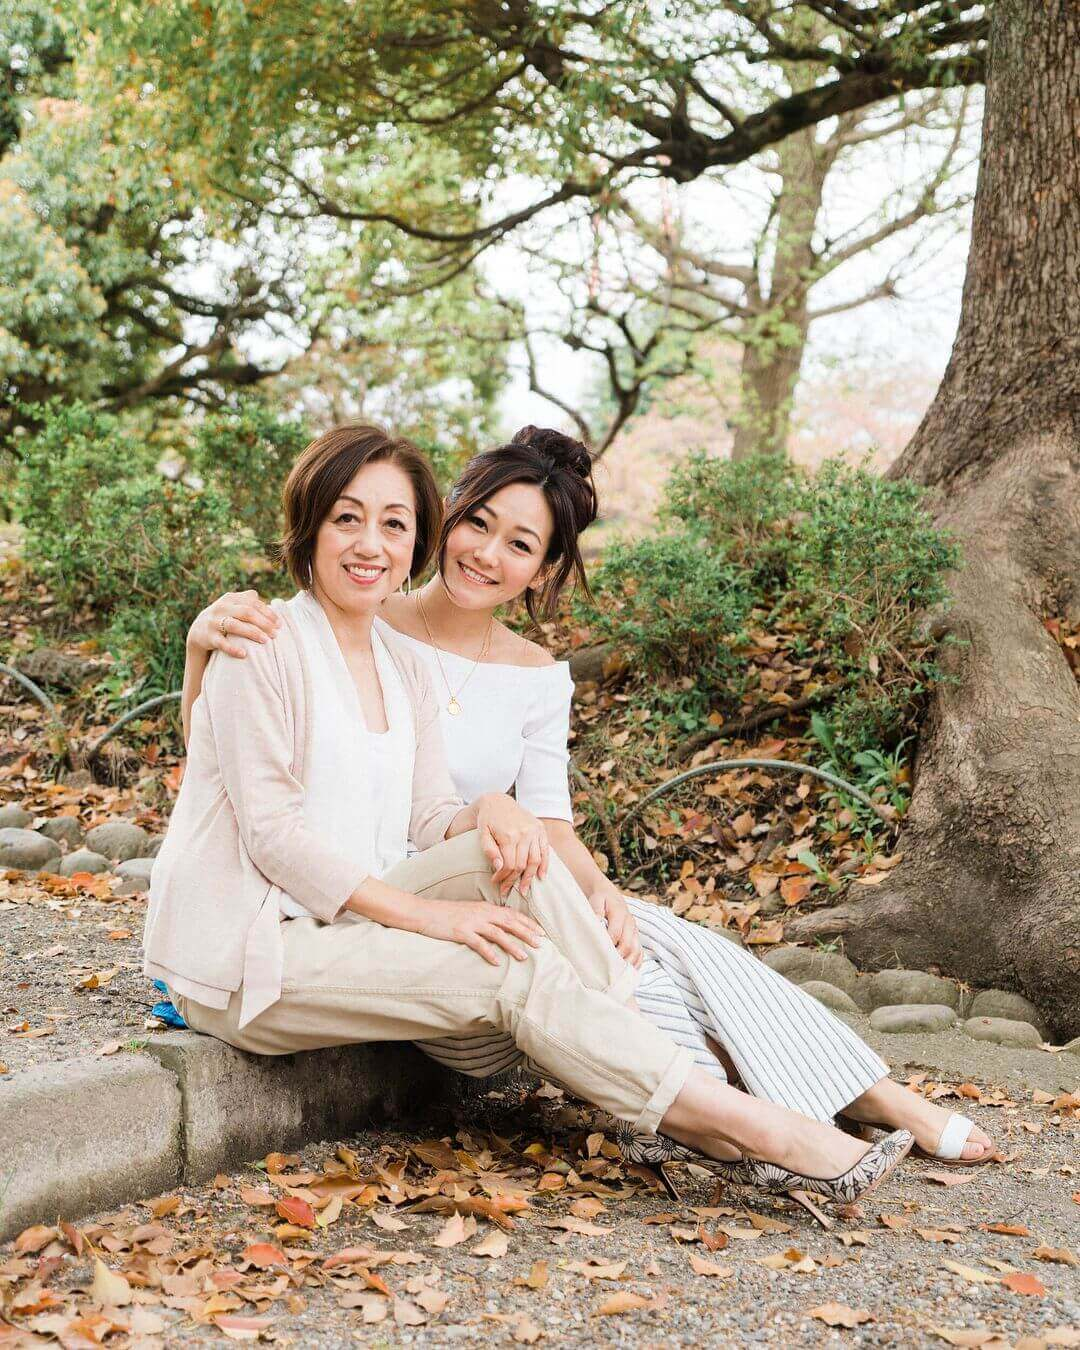 Karen Fukuhara and her mother in a park